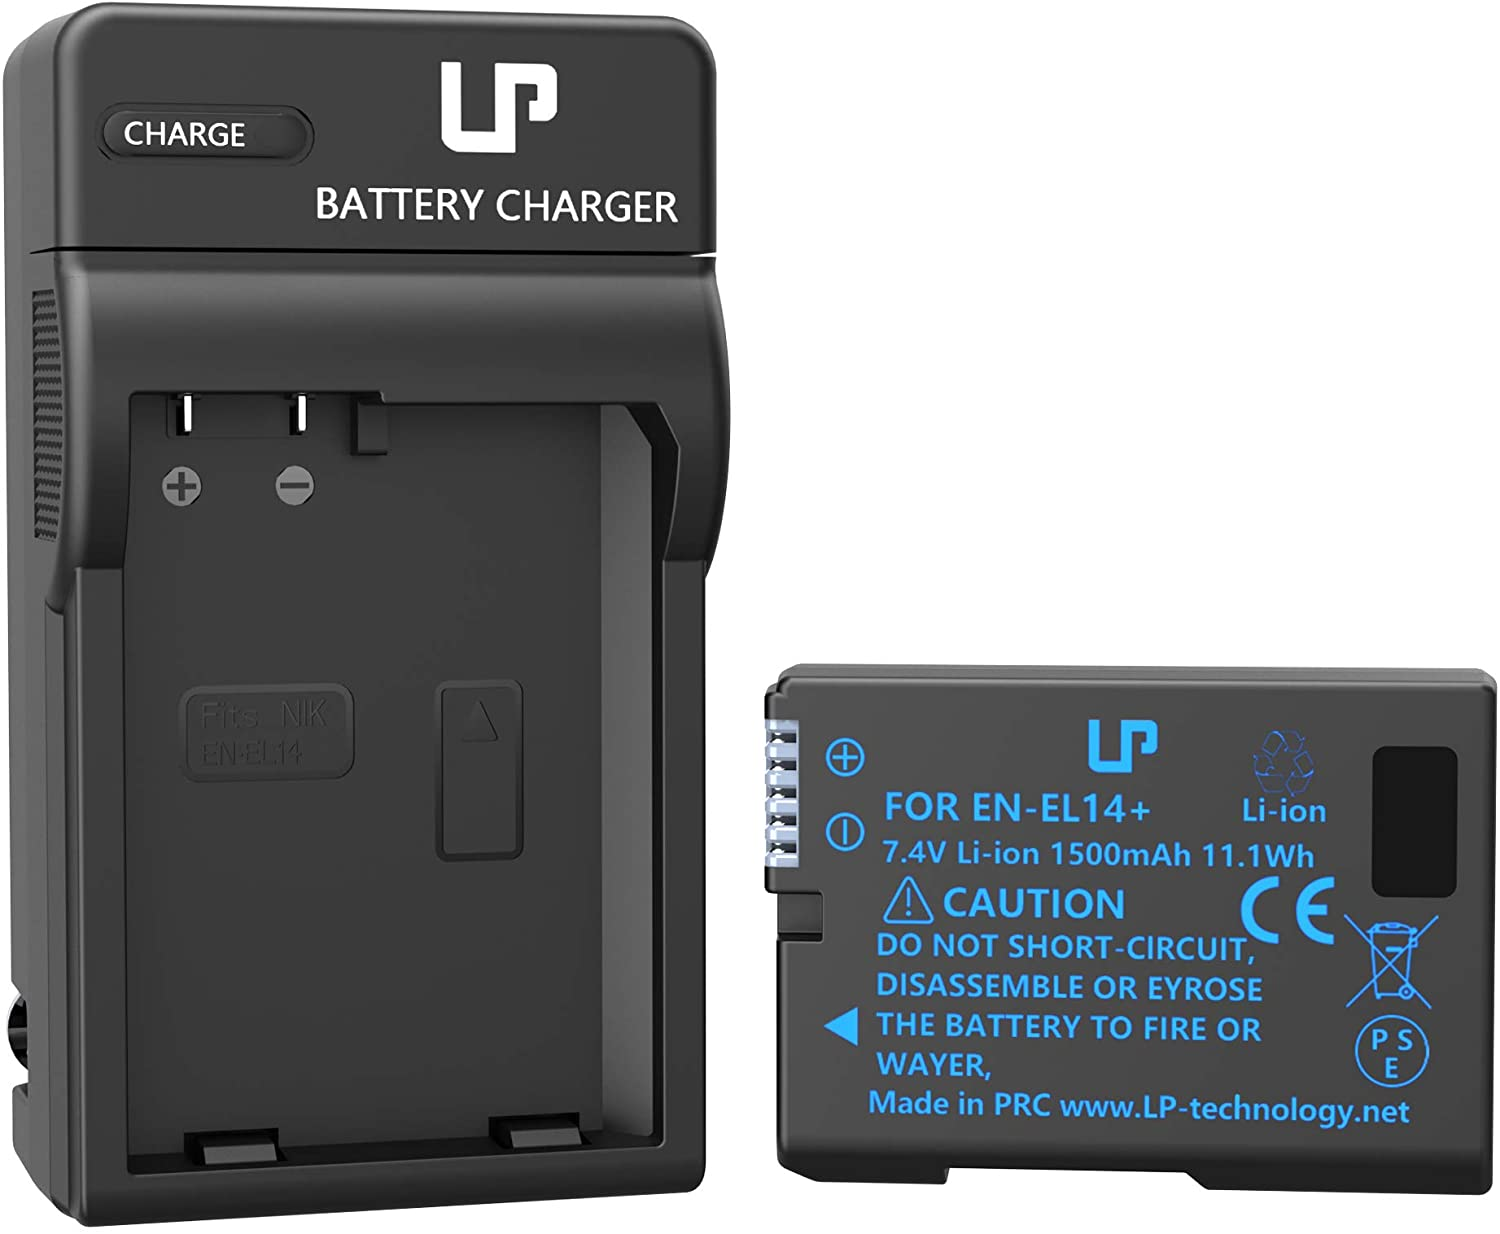 EN-EL14 EN EL14a Battery Charger Pack, LP Charger Compatible with Nikon D3500, D5600, D3300, D5100, D5500, D3100, D3200, D5200, D5300, D3400, DF, Coolpix P7000, P7100, P7700, P7800 Cameras & More : Camera & Photo